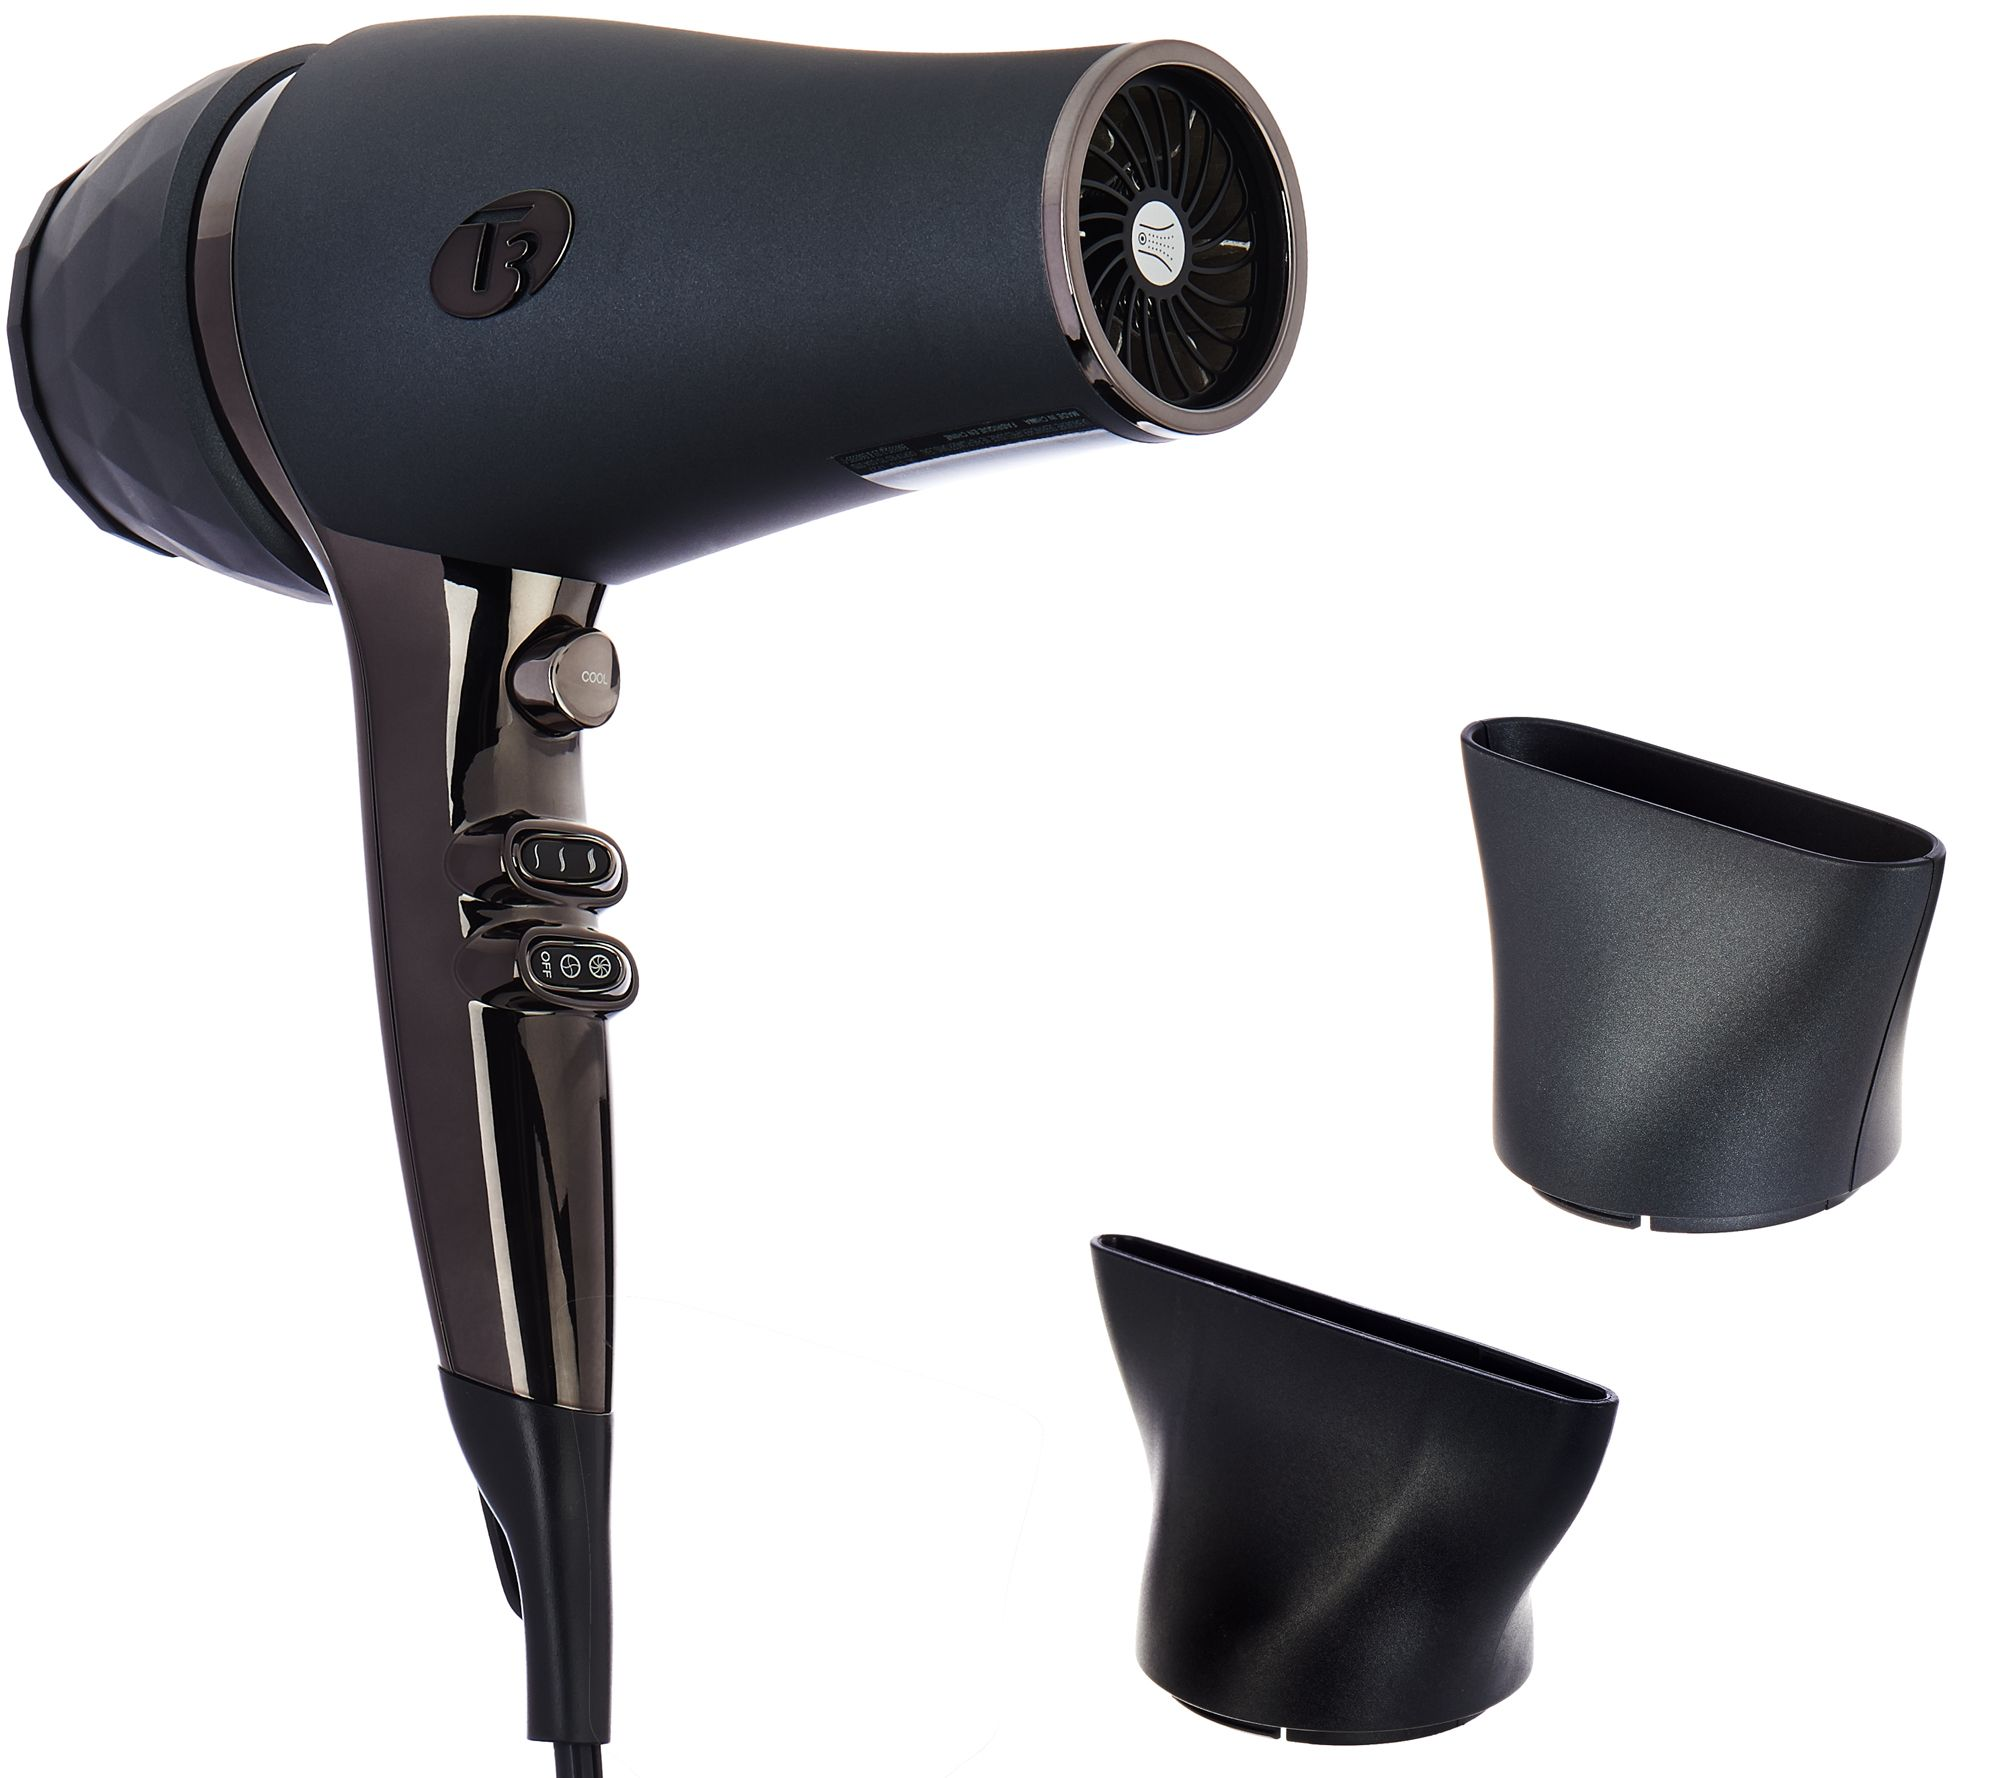 T3 Proi Professional Hair Dryer Free T3 Compact Iron